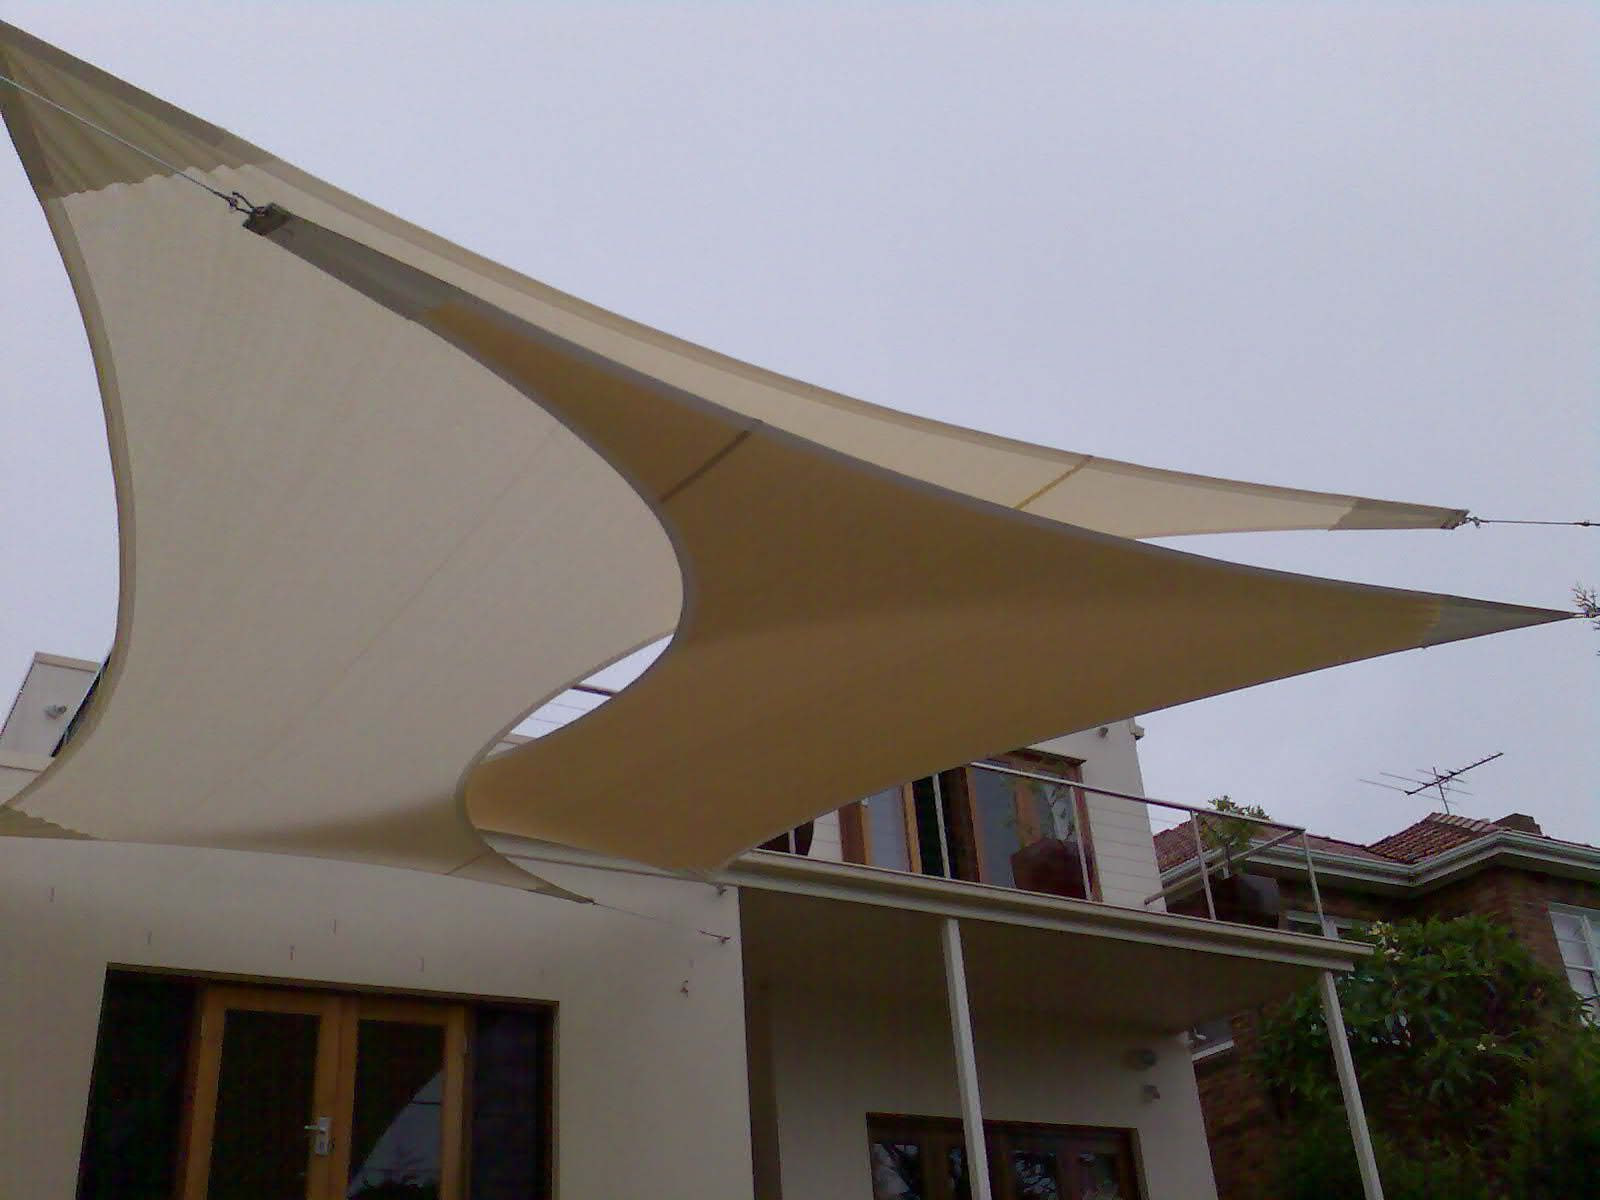 This Is A Creative Use Of Sail Awnings For Shading Large